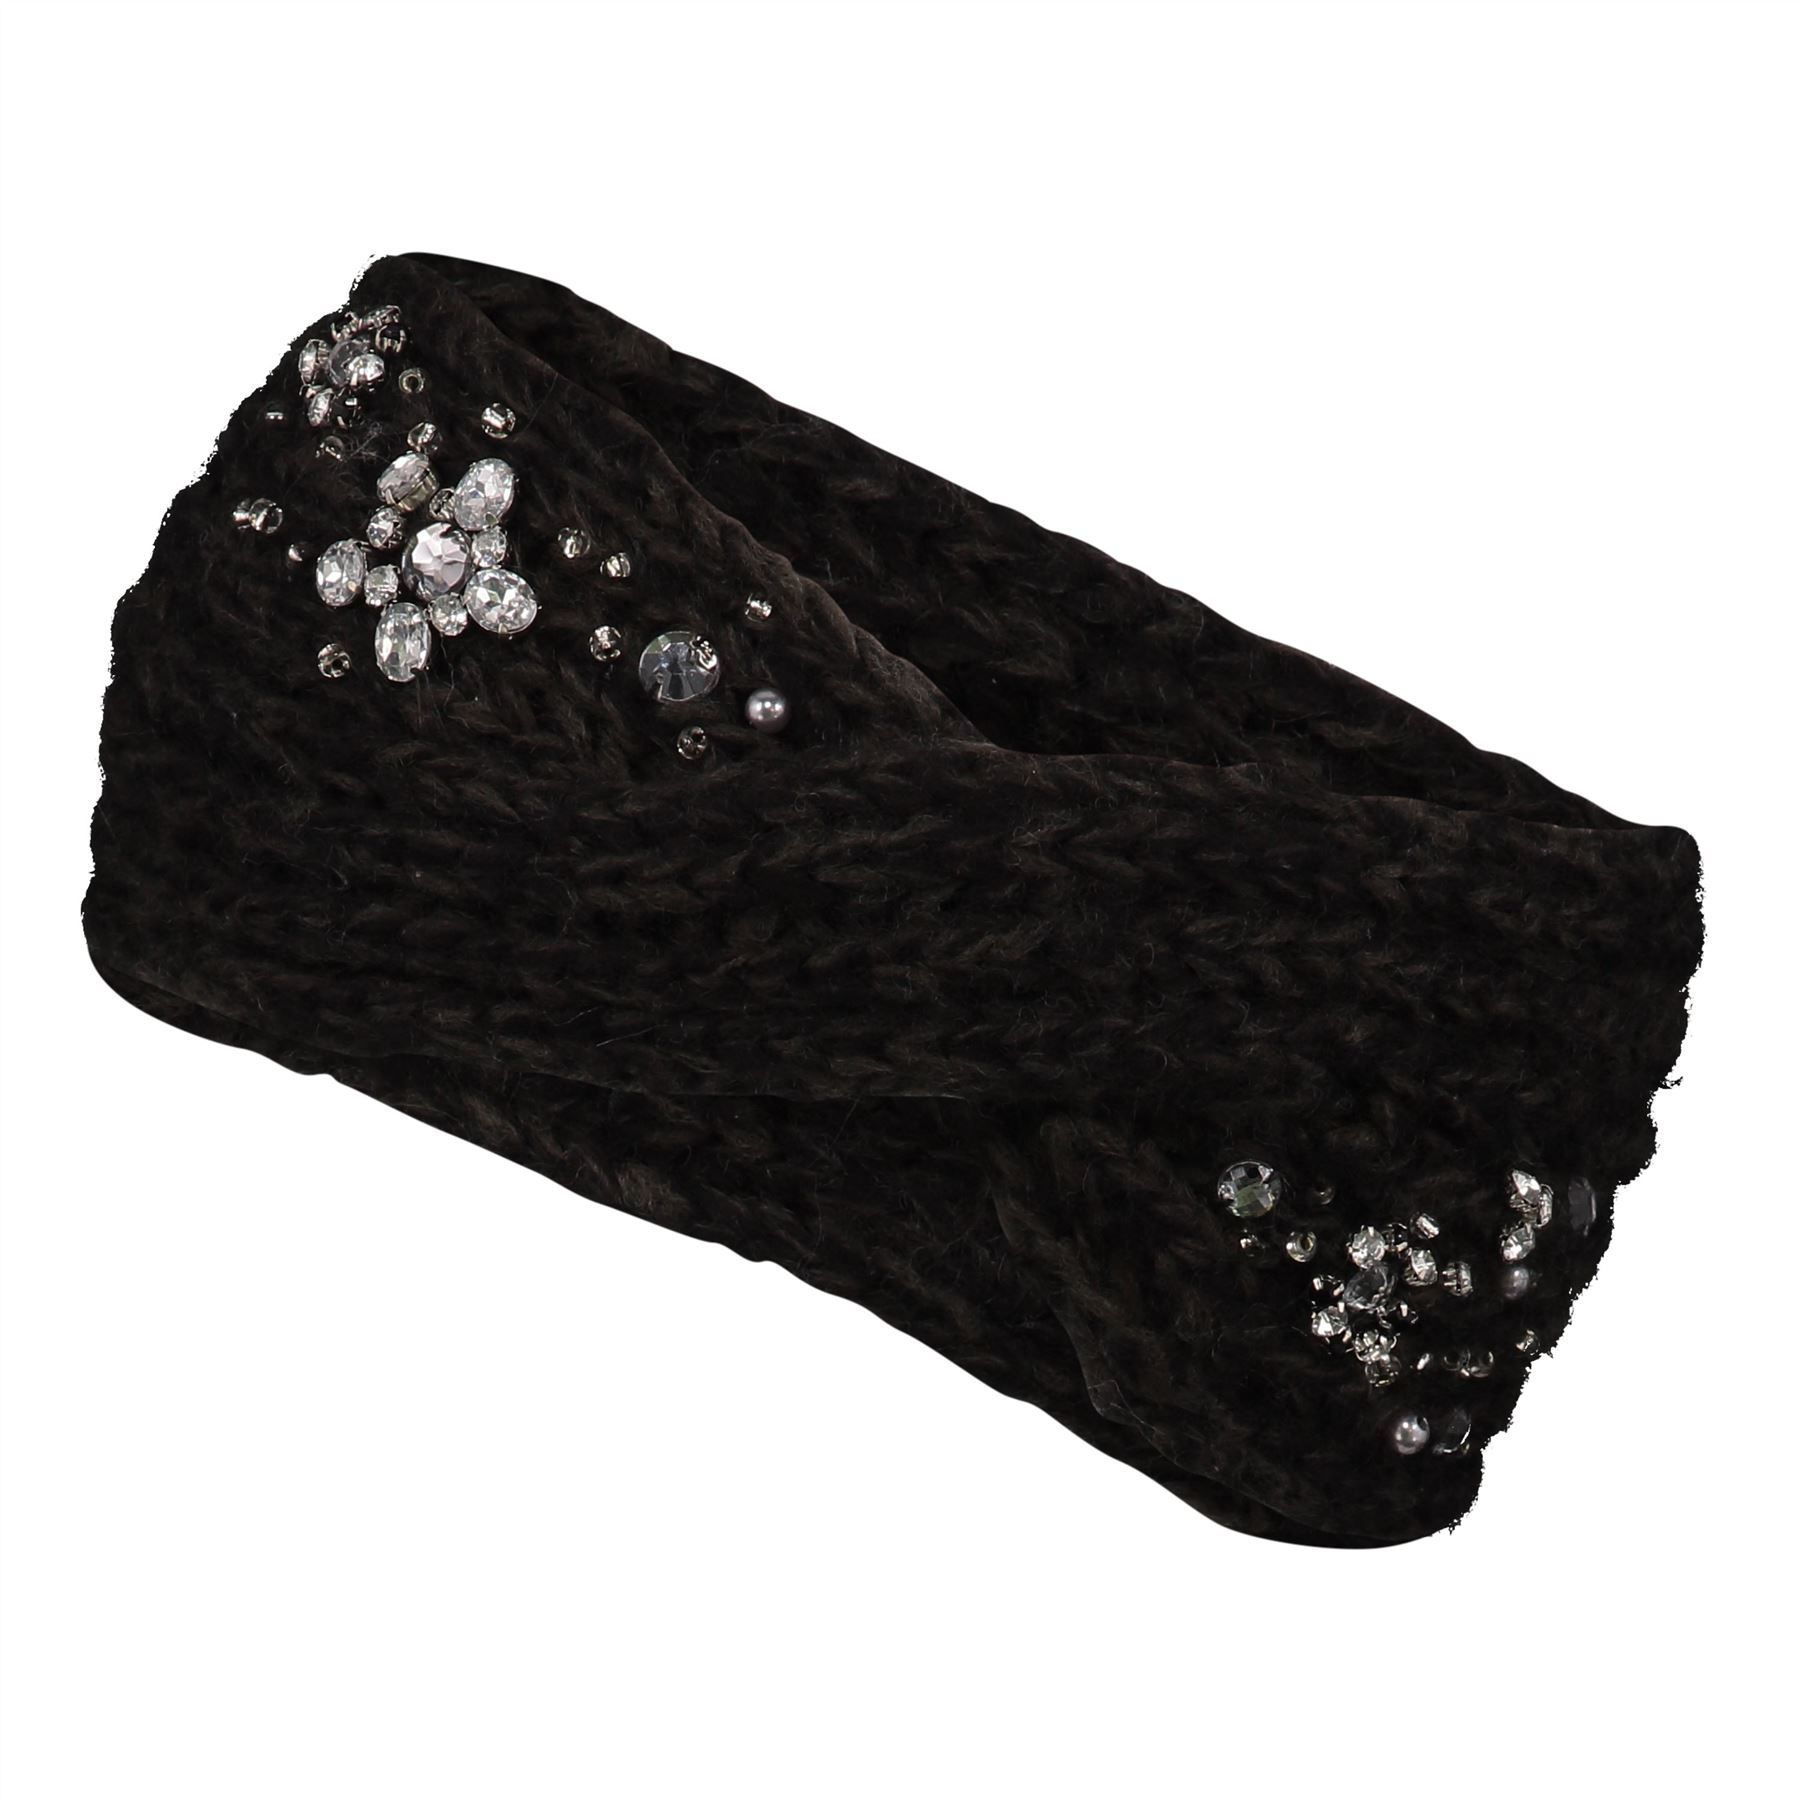 Image of Embellished Twist Knit Headband - Black - One Size